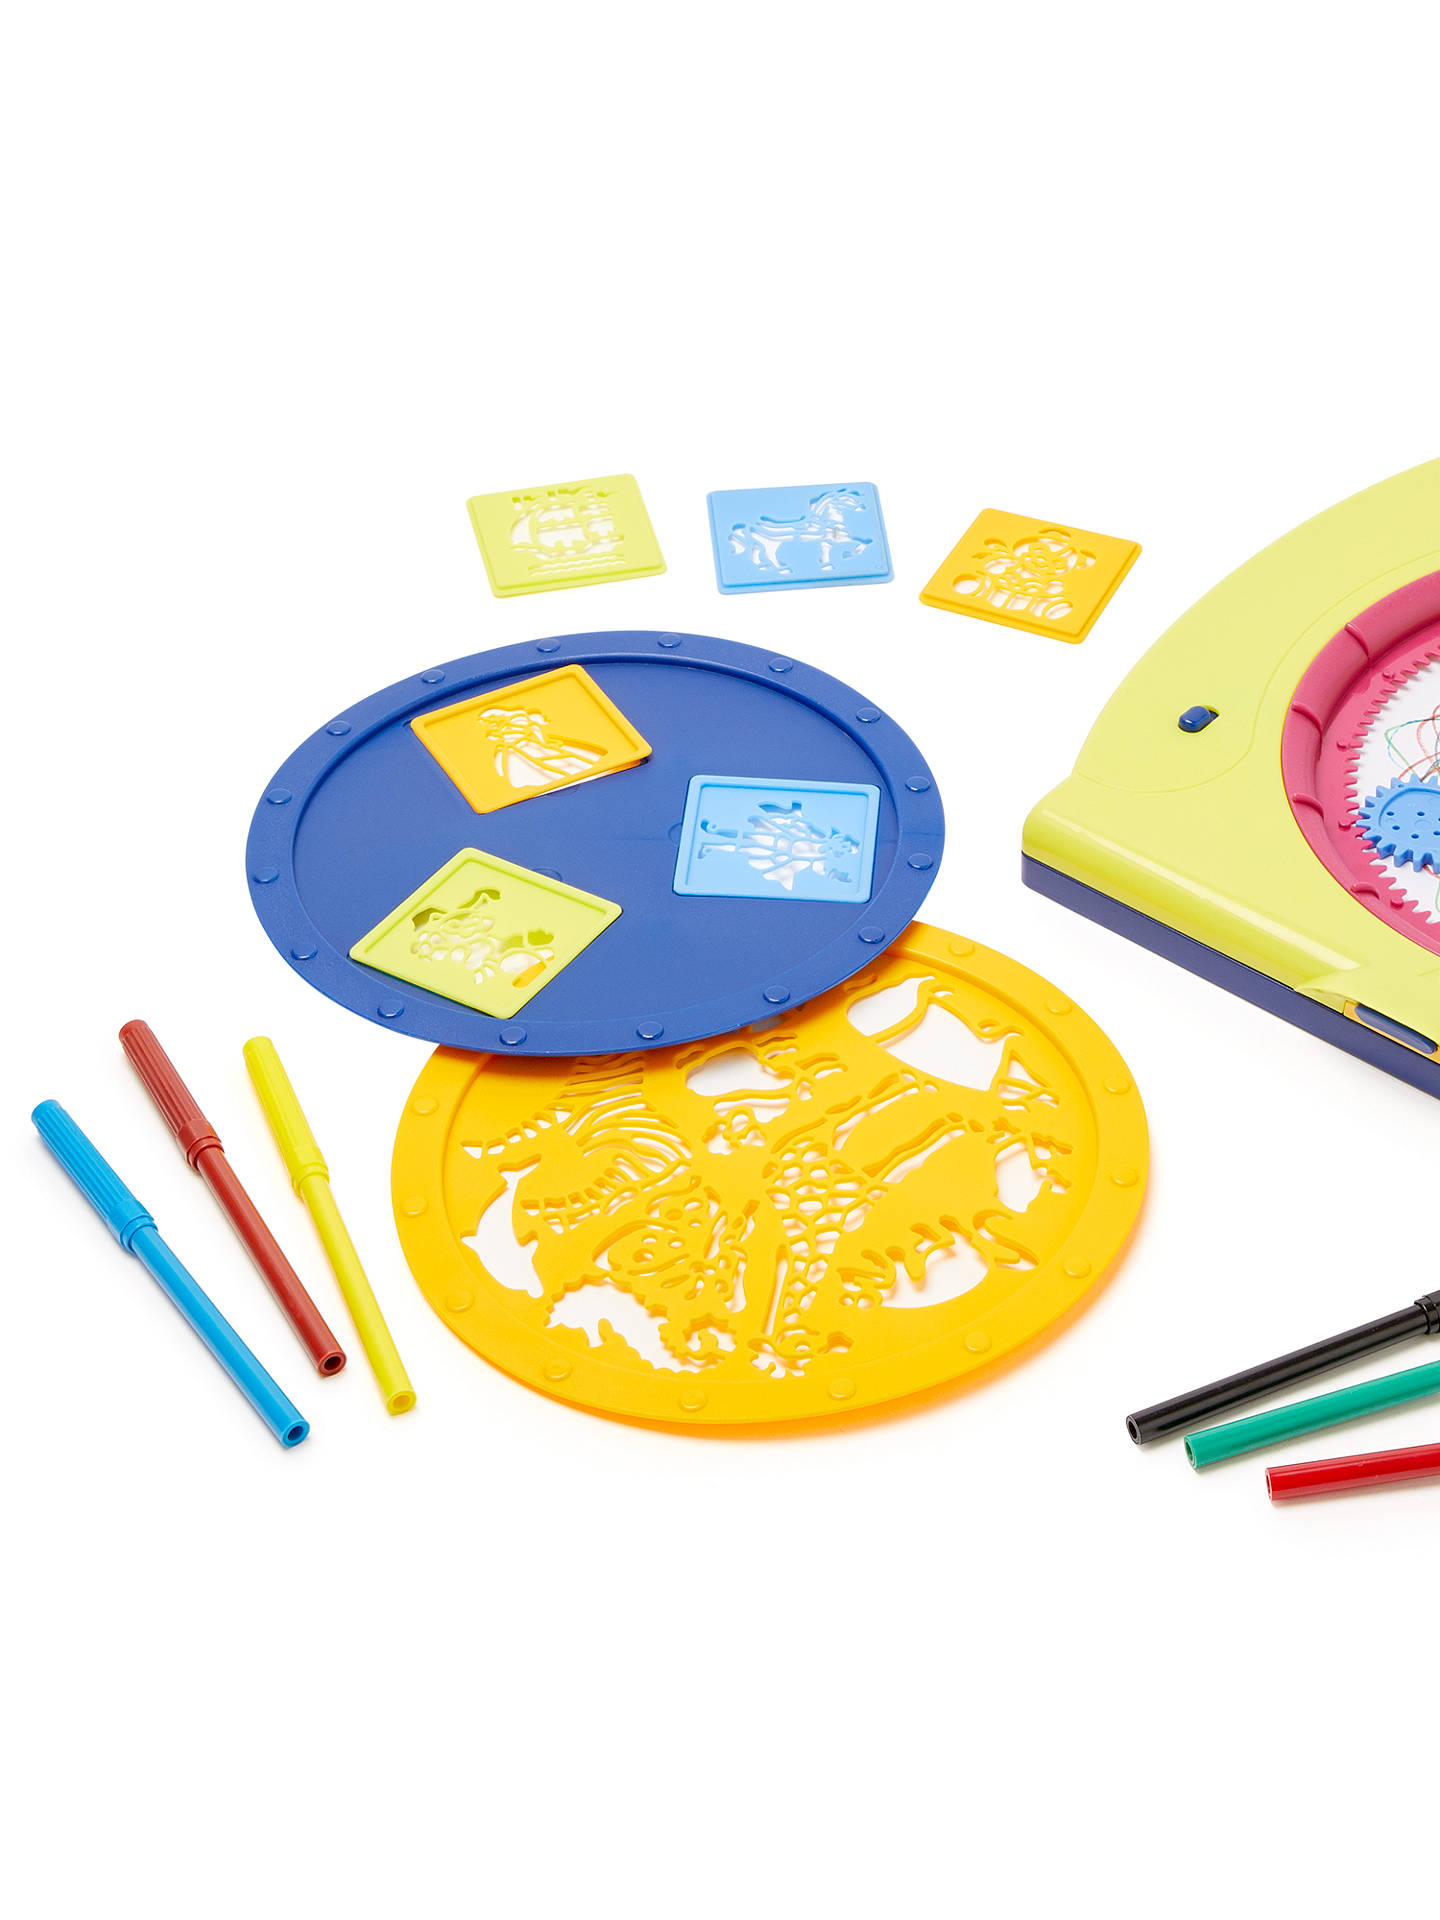 Buy John Lewis & Partners Mandala Drawing Toy & Stencil Set Online at johnlewis.com